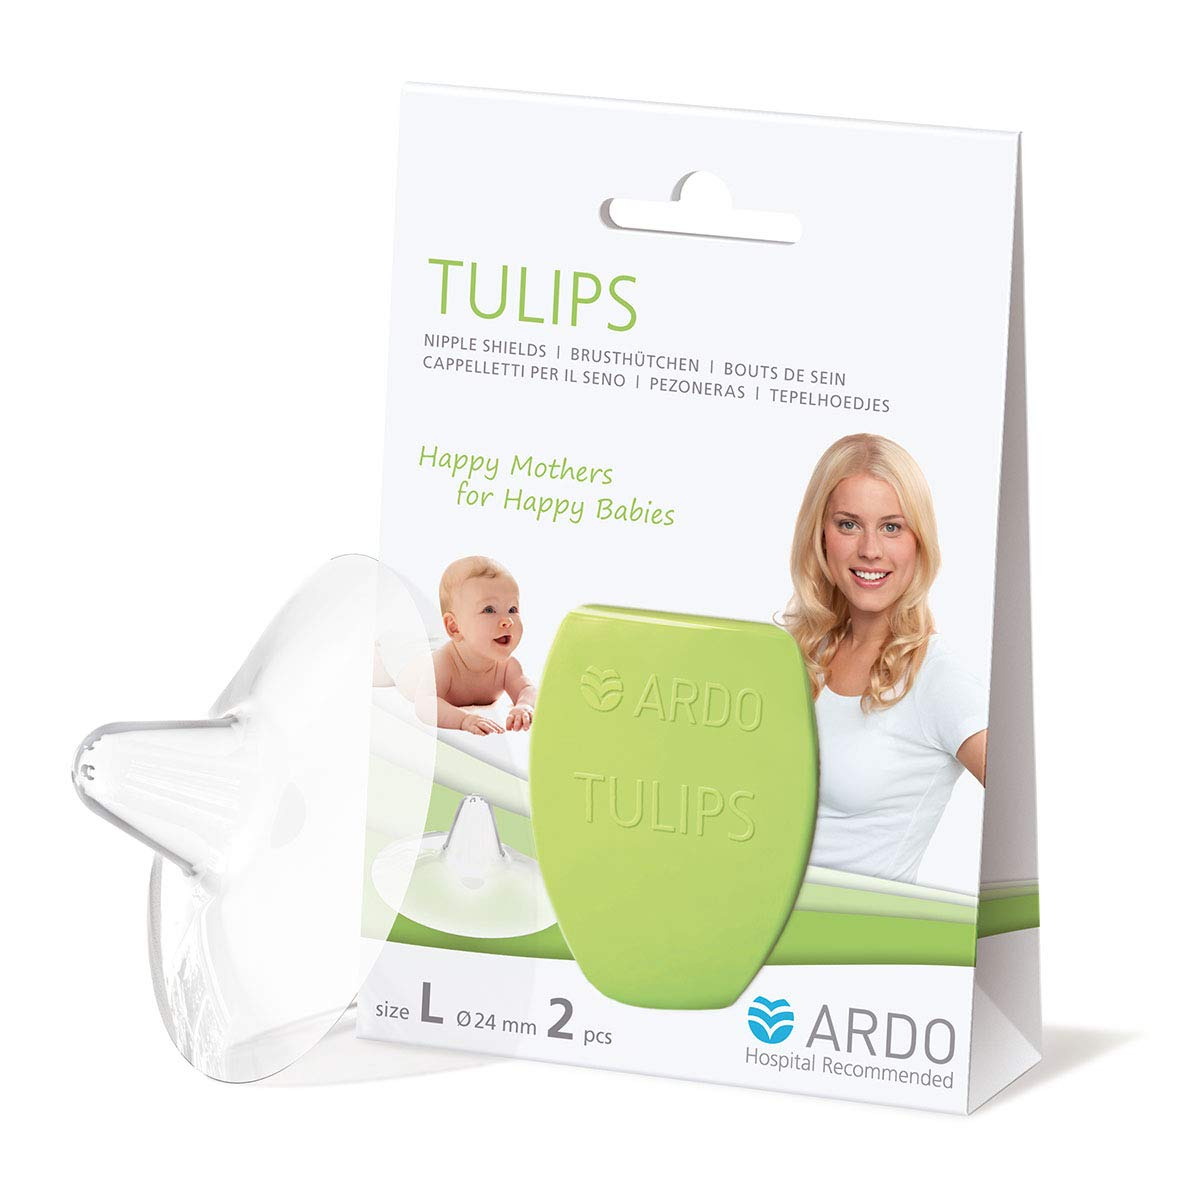 Ardo medical Tulips Contact Nipple Shields